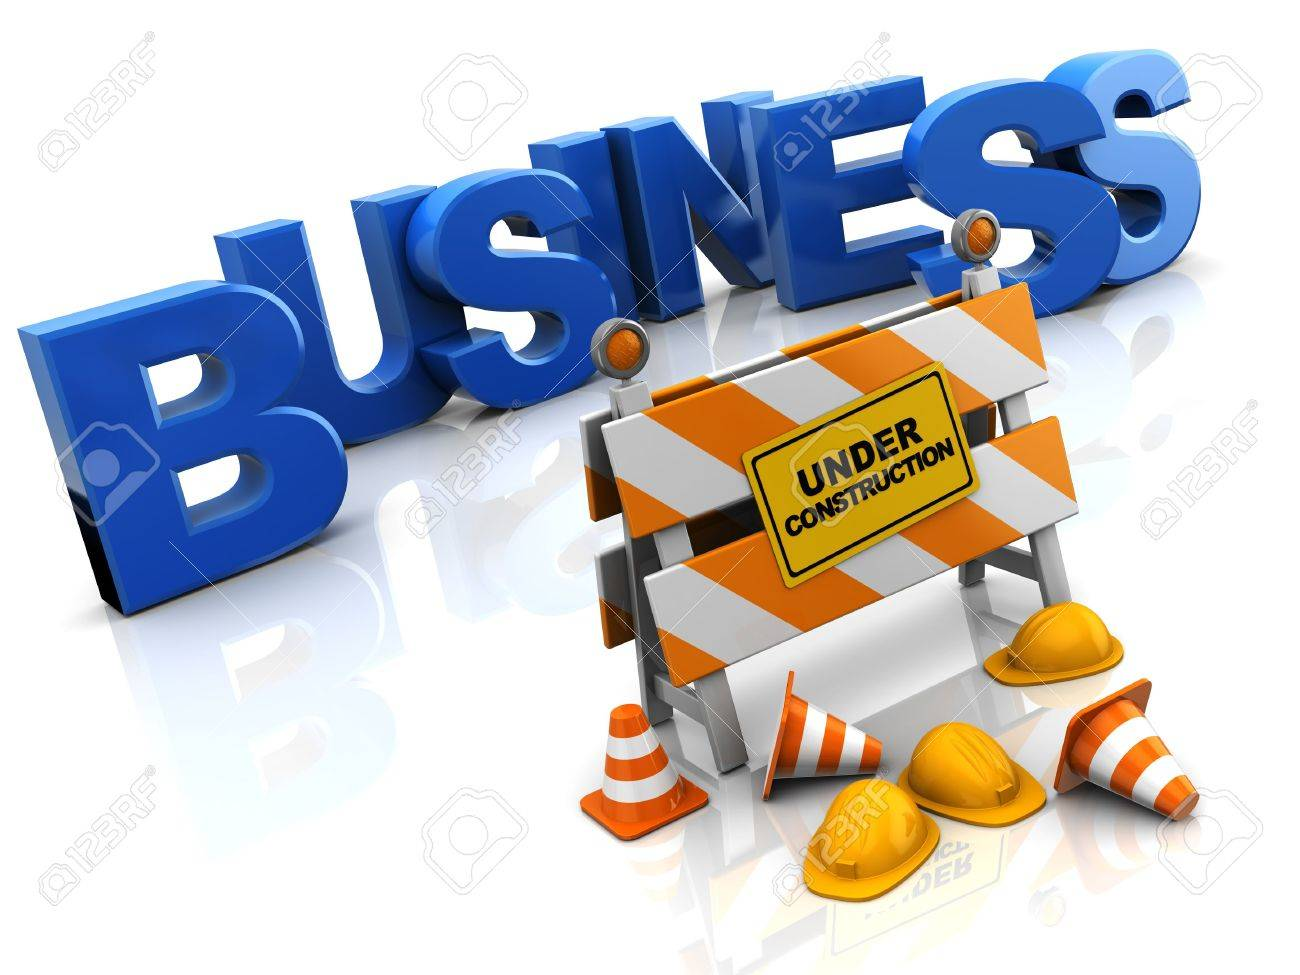 abstract 3d illustration of building business concept Stock Photo - 9518829